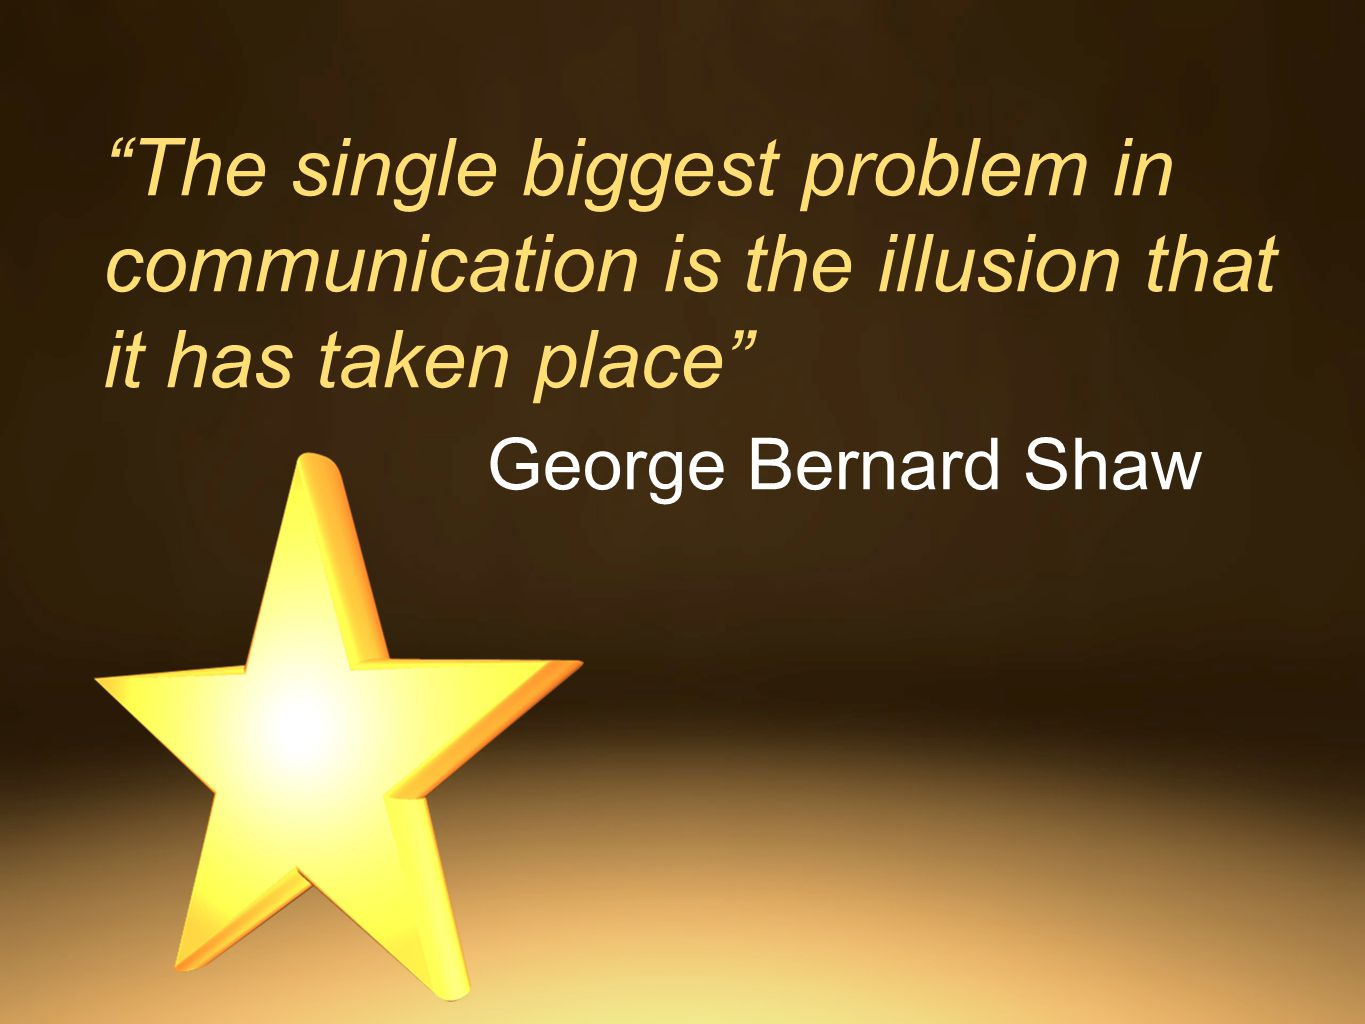 The single biggest problem in communication is the illusion that it has taken place George Bernard Shaw